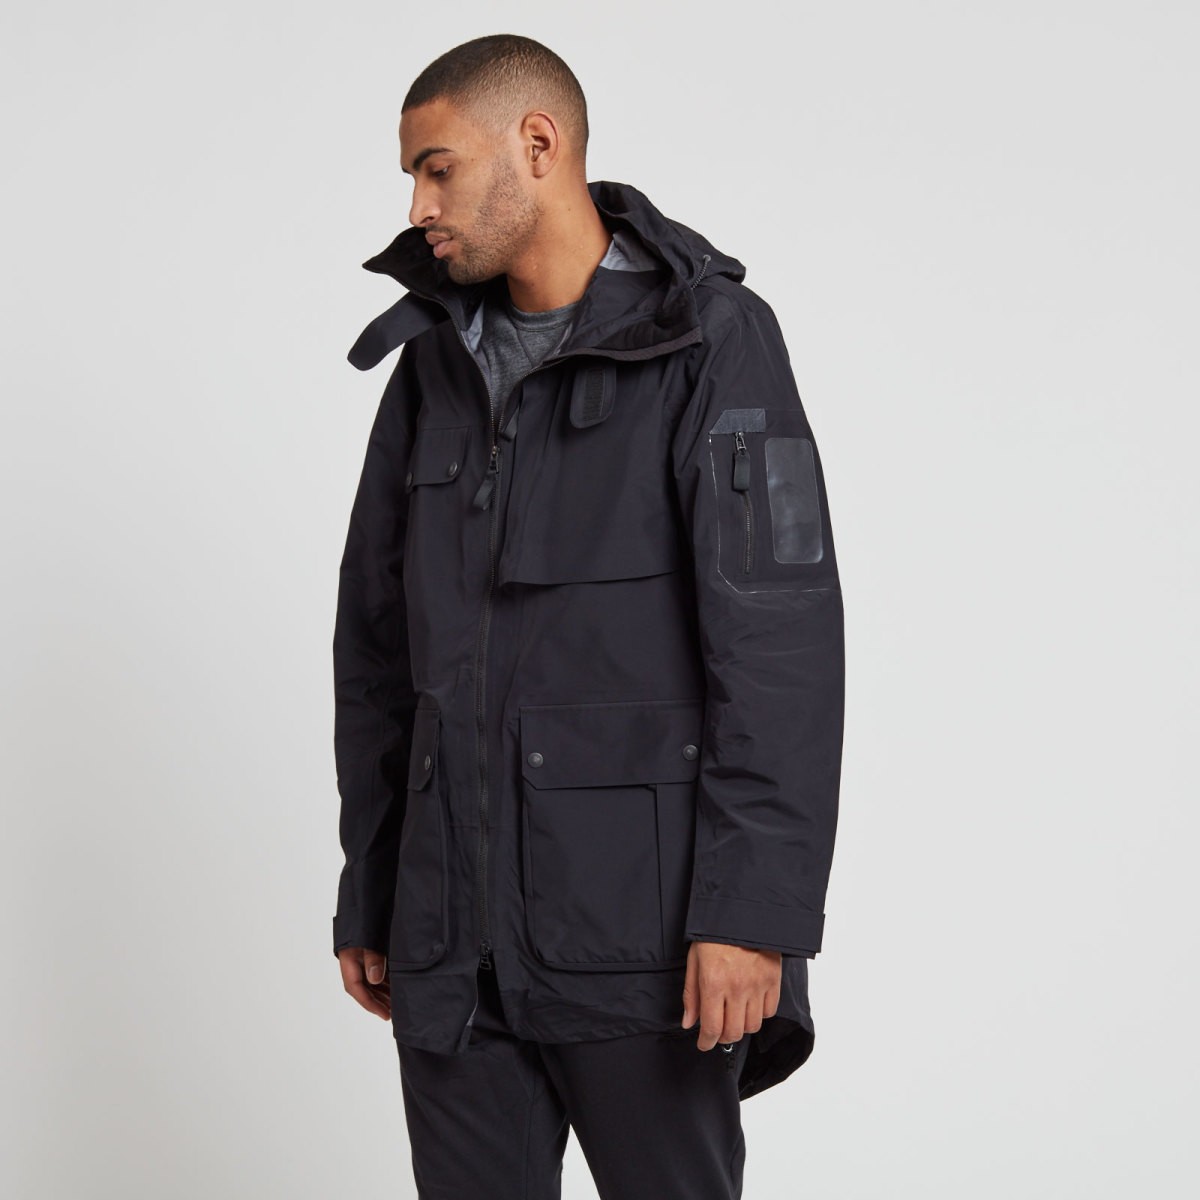 adidas-day-one-gore-parka.jpg